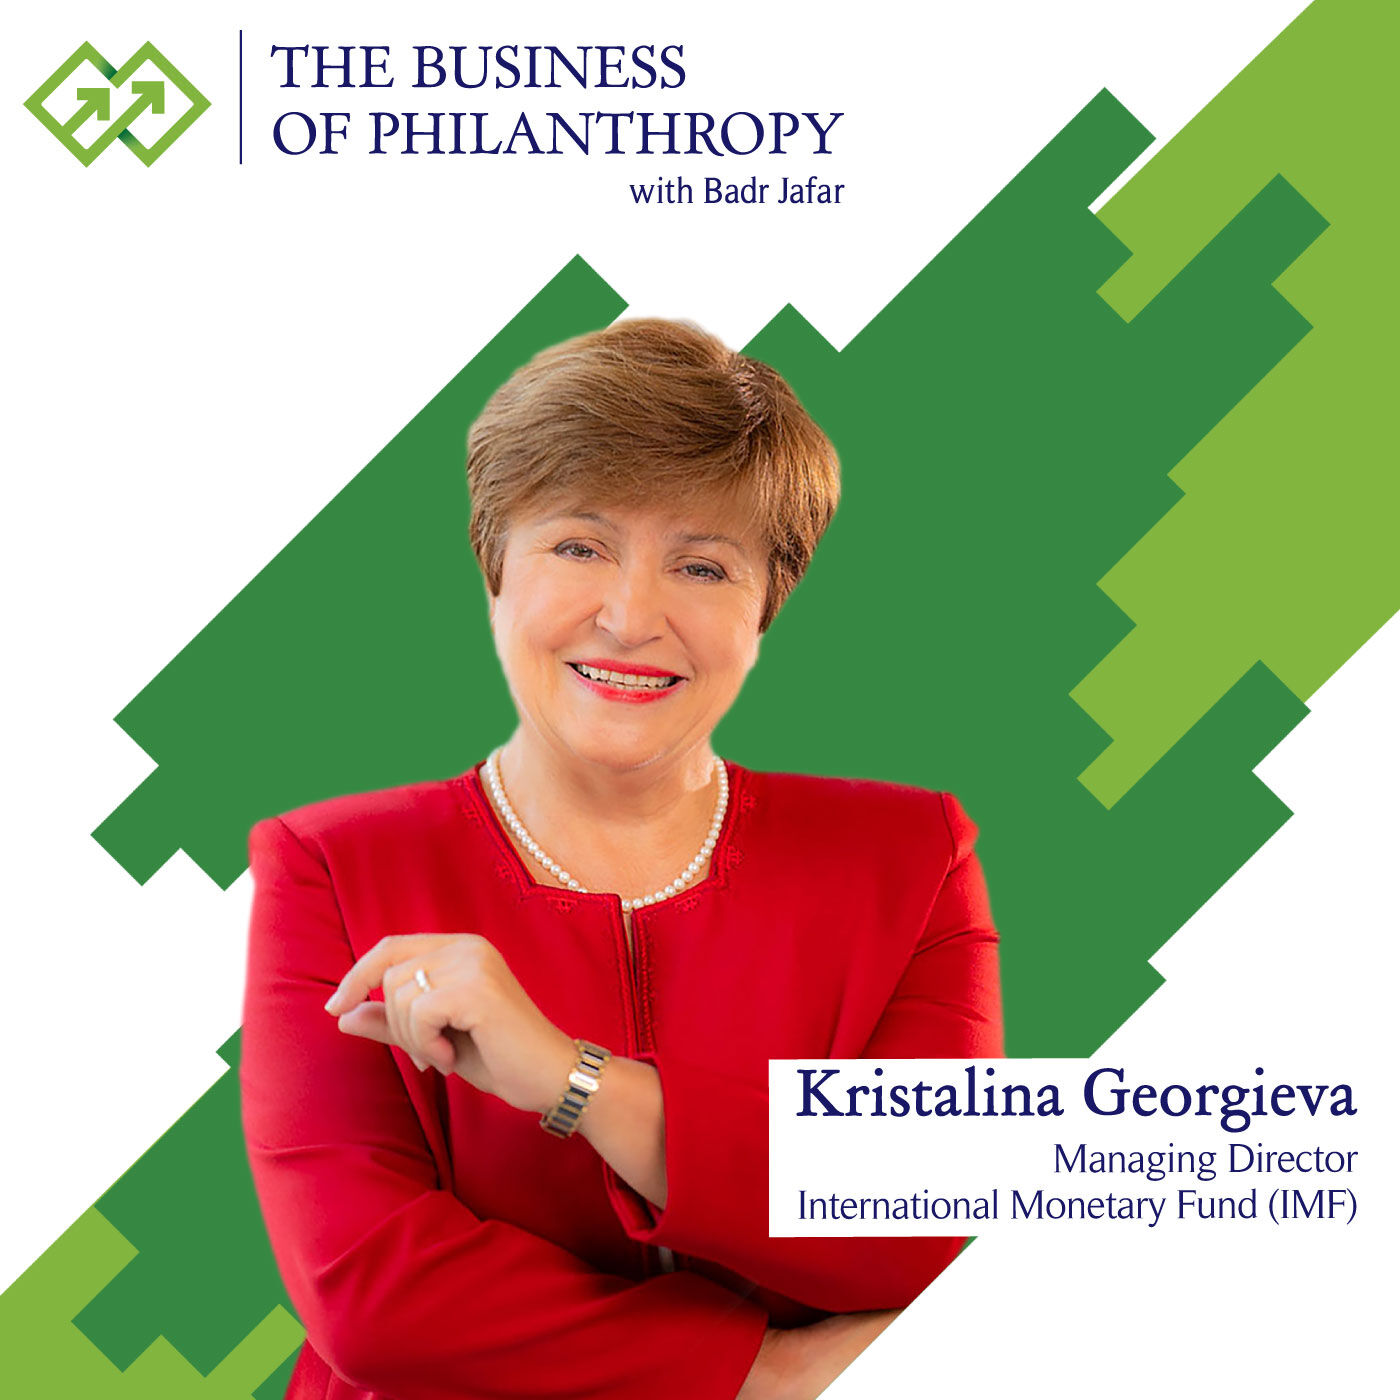 Kristalina Georgieva; A Conversation with Badr Jafar